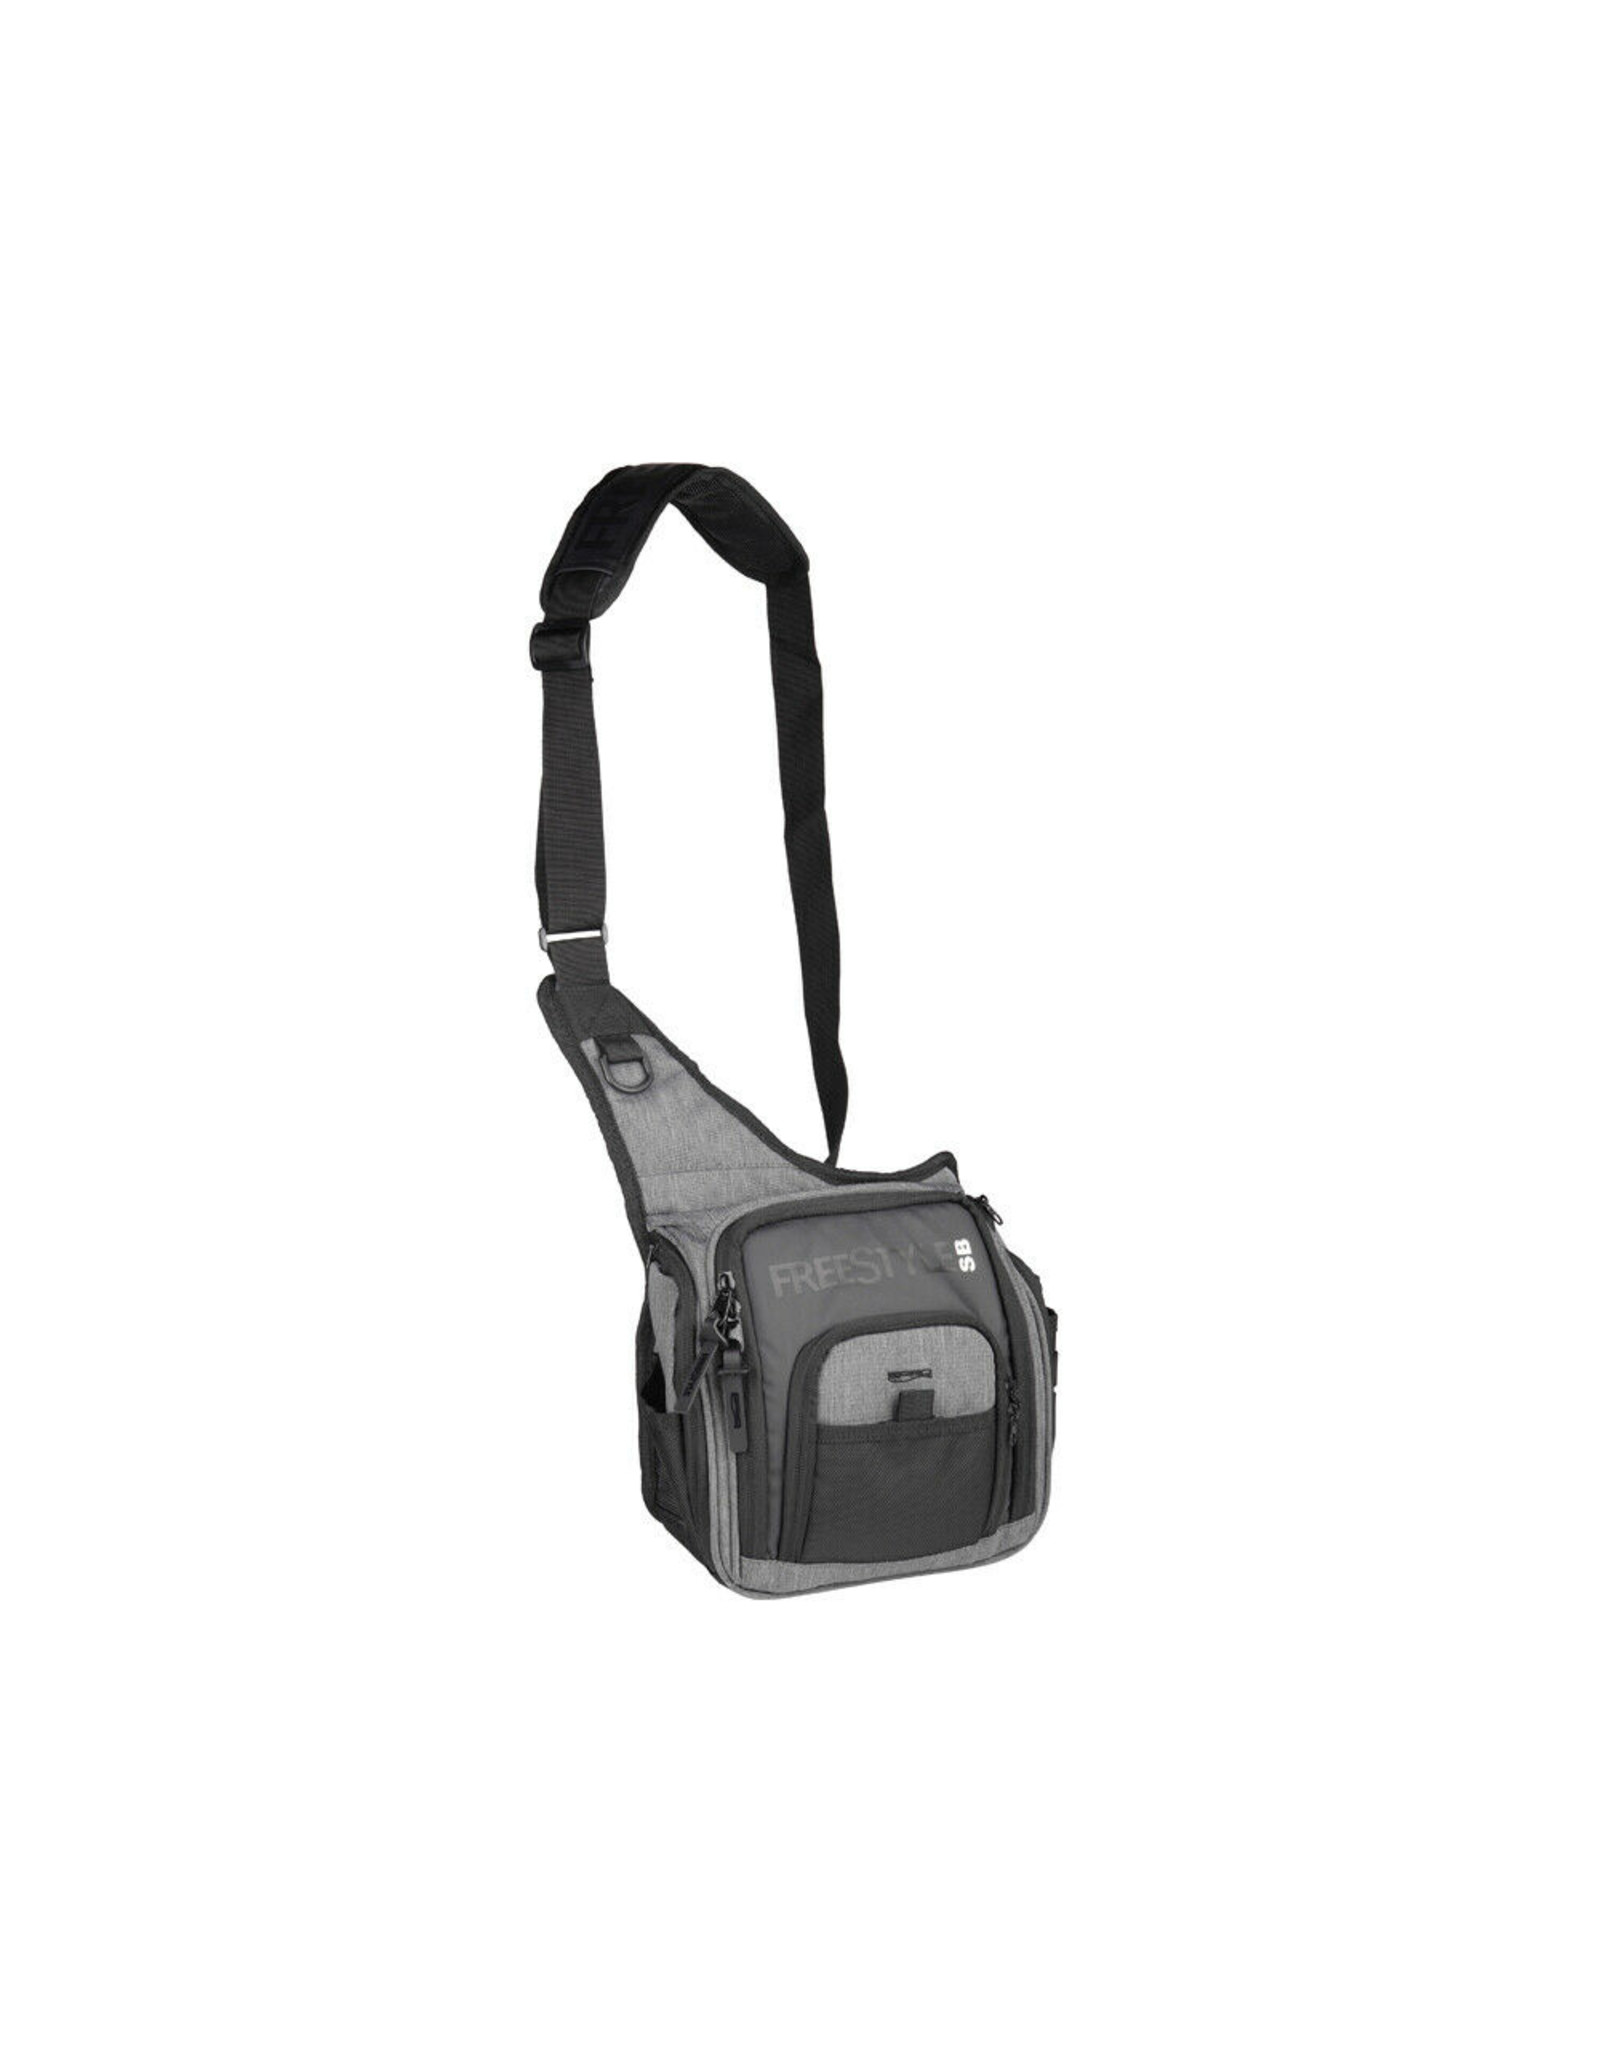 SPRO Spro Freestyle Shoulder Bag V2